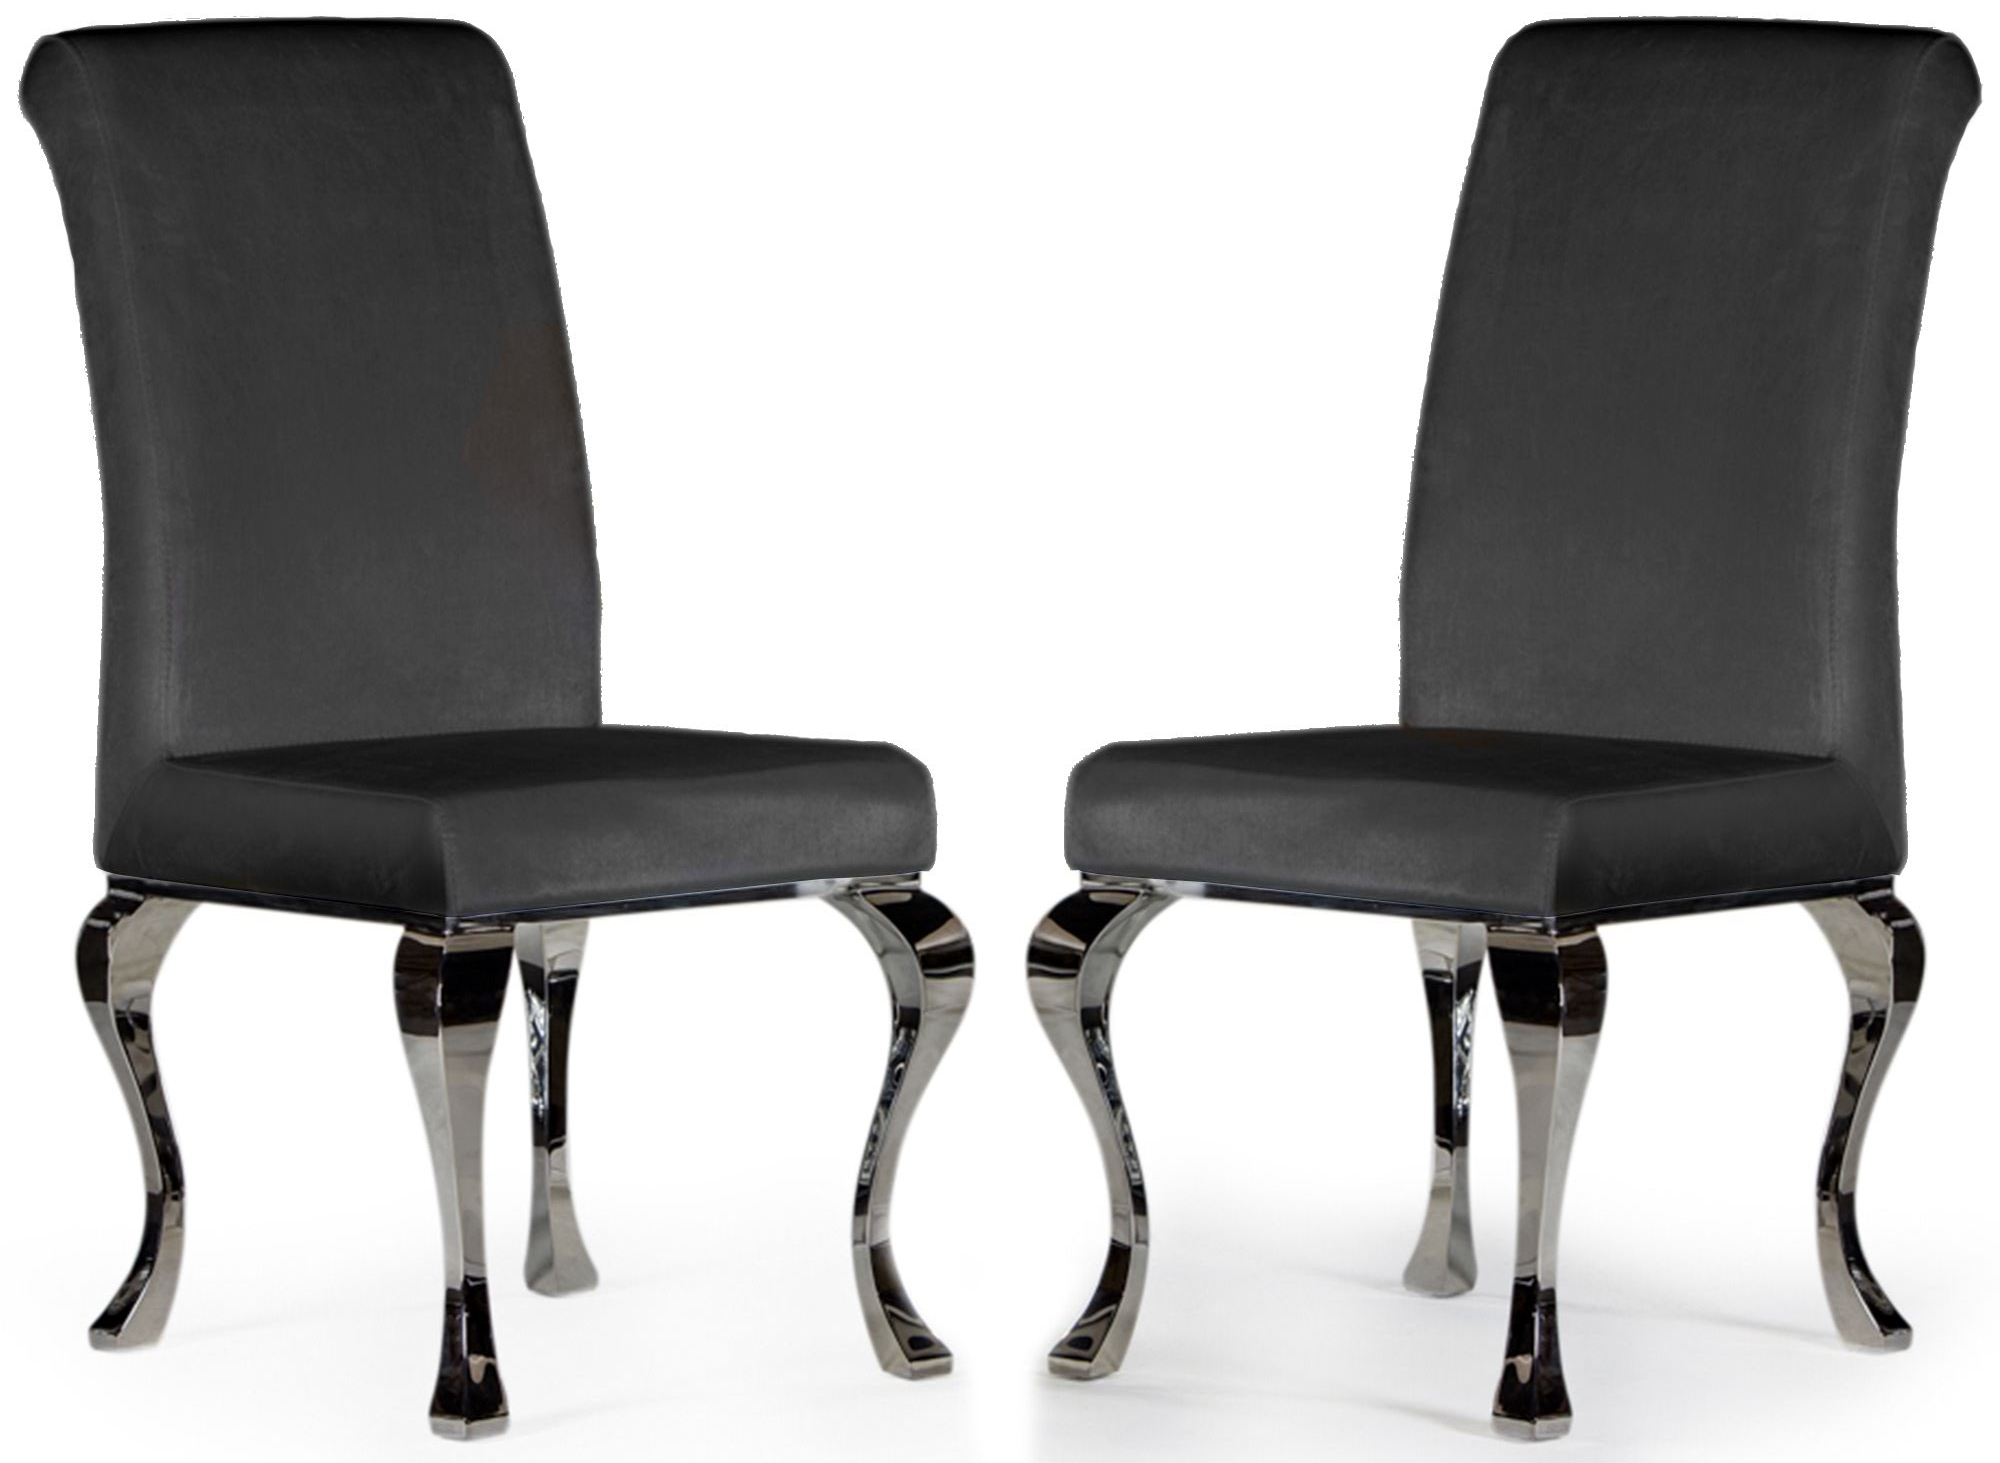 French style velvet chairs with cabriole legs